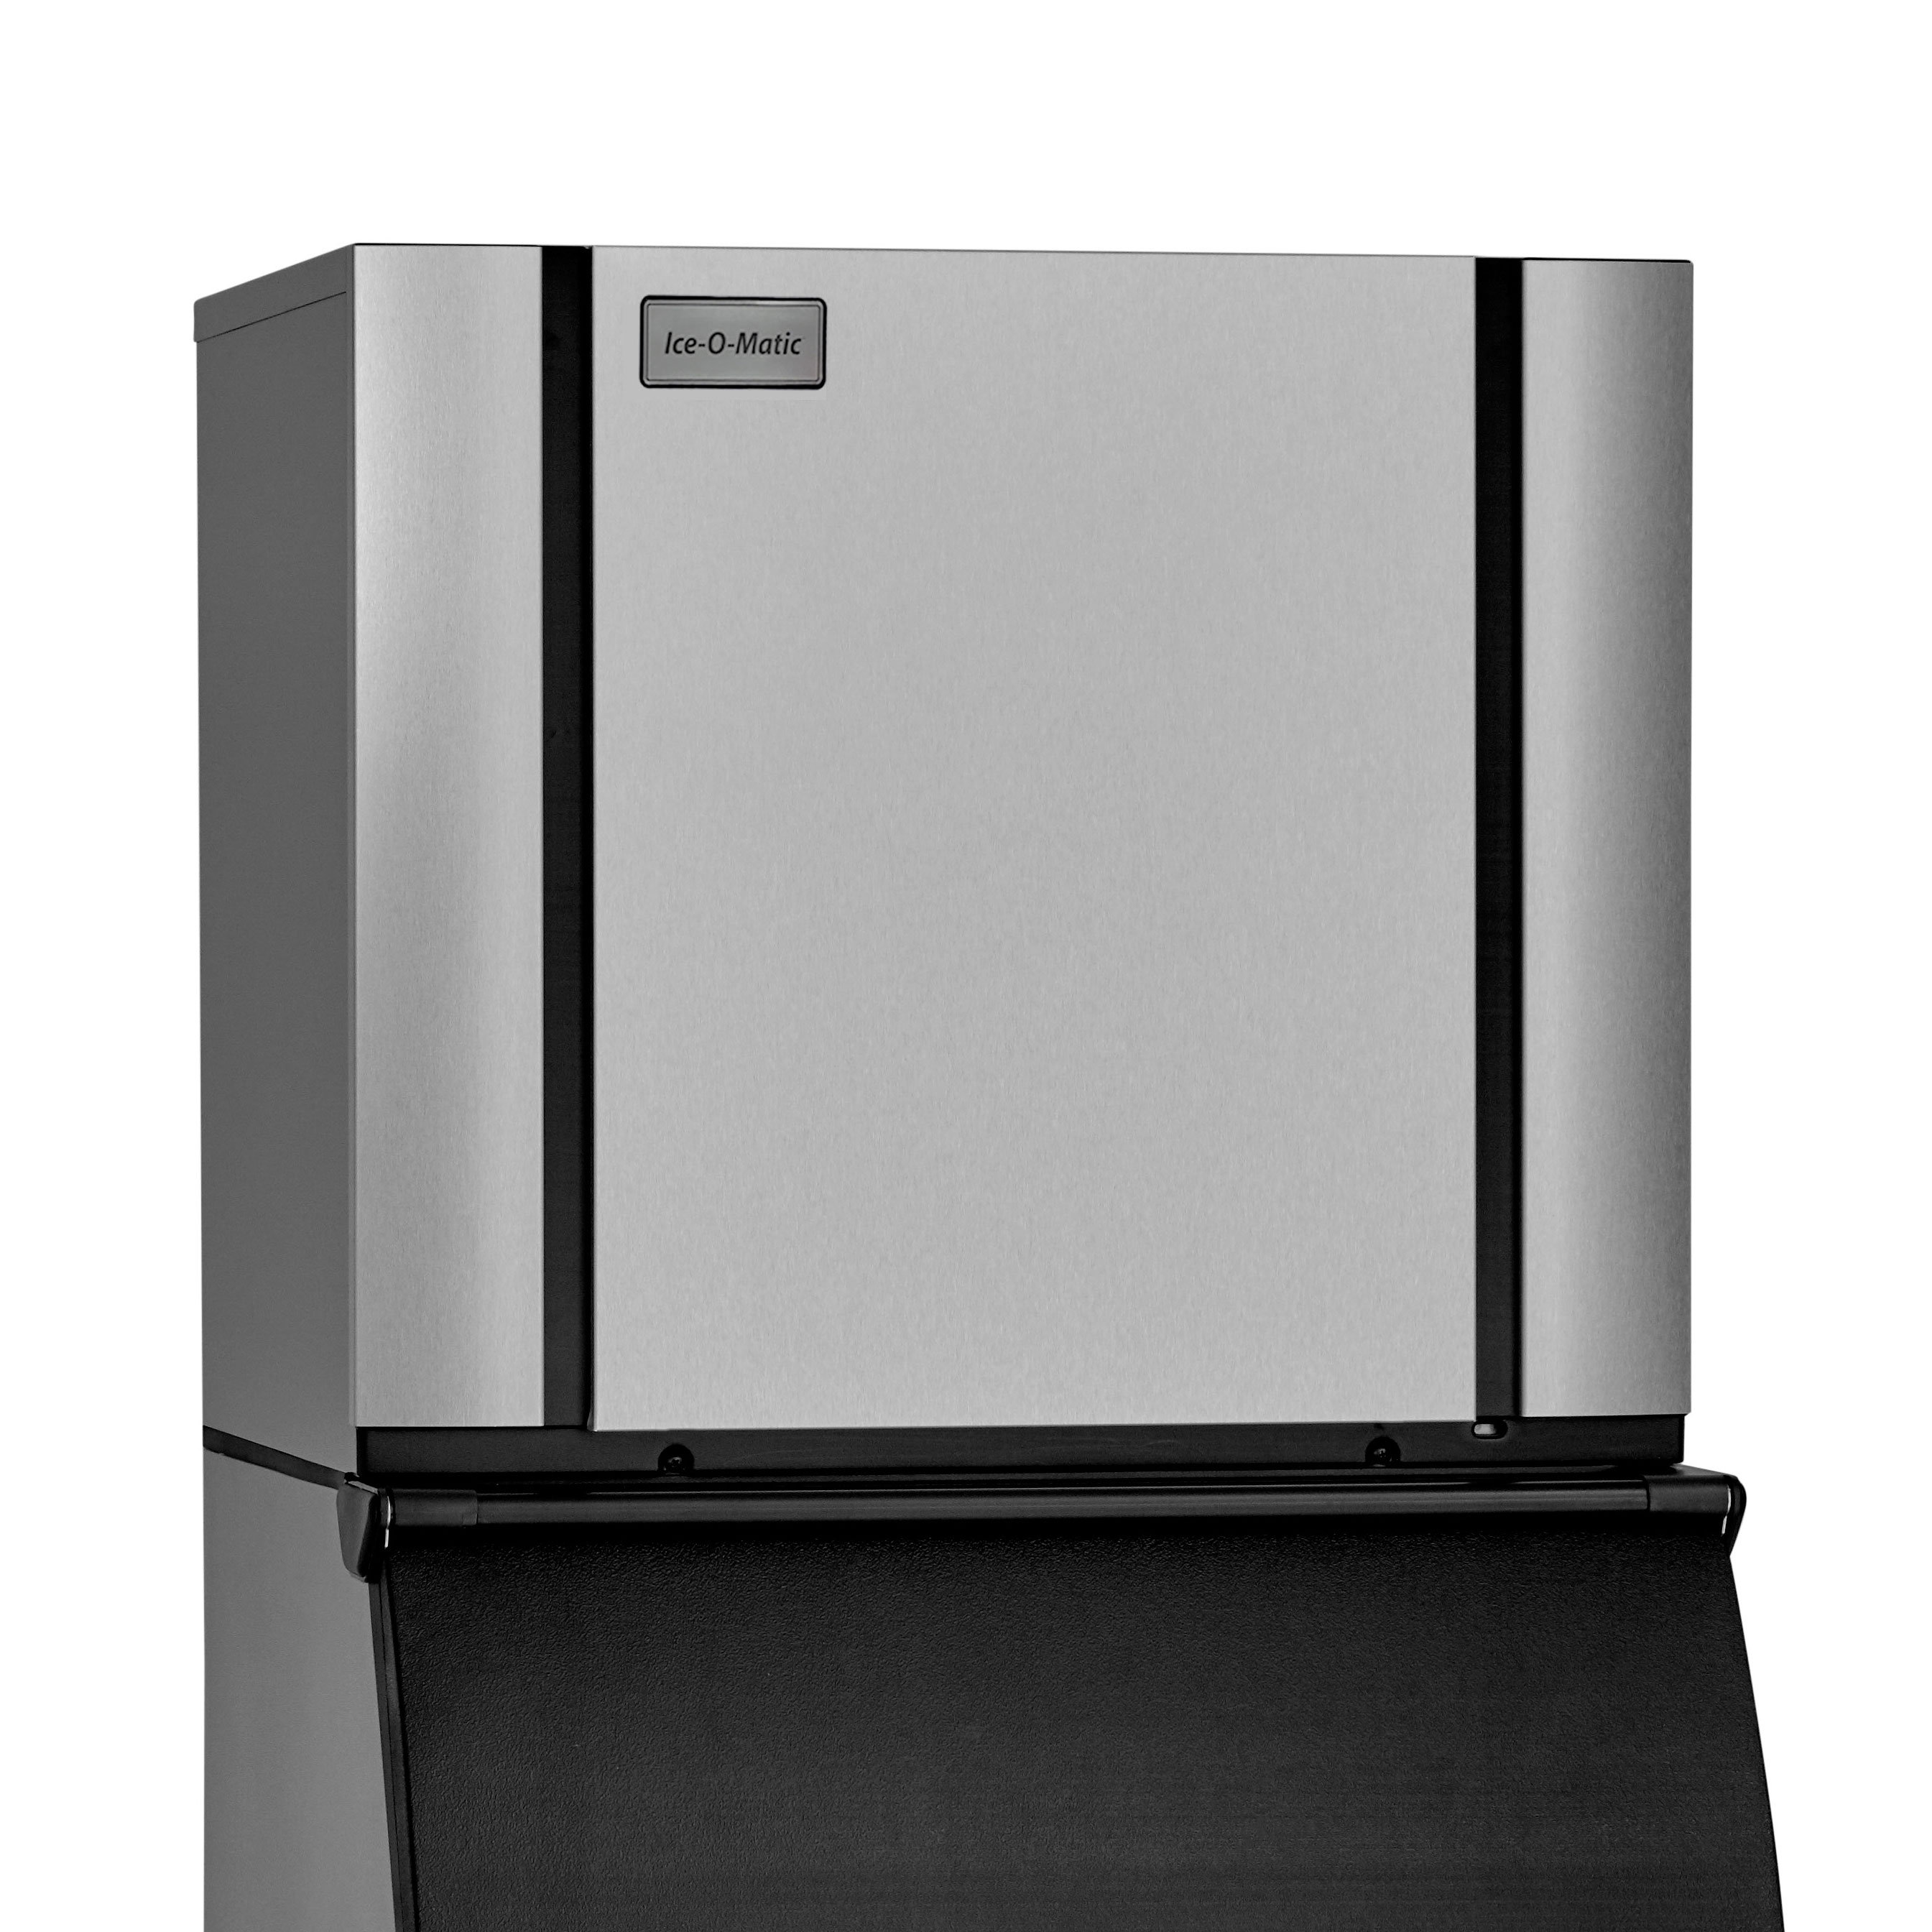 Ice-O-Matic CIM1137FA ice maker, cube-style